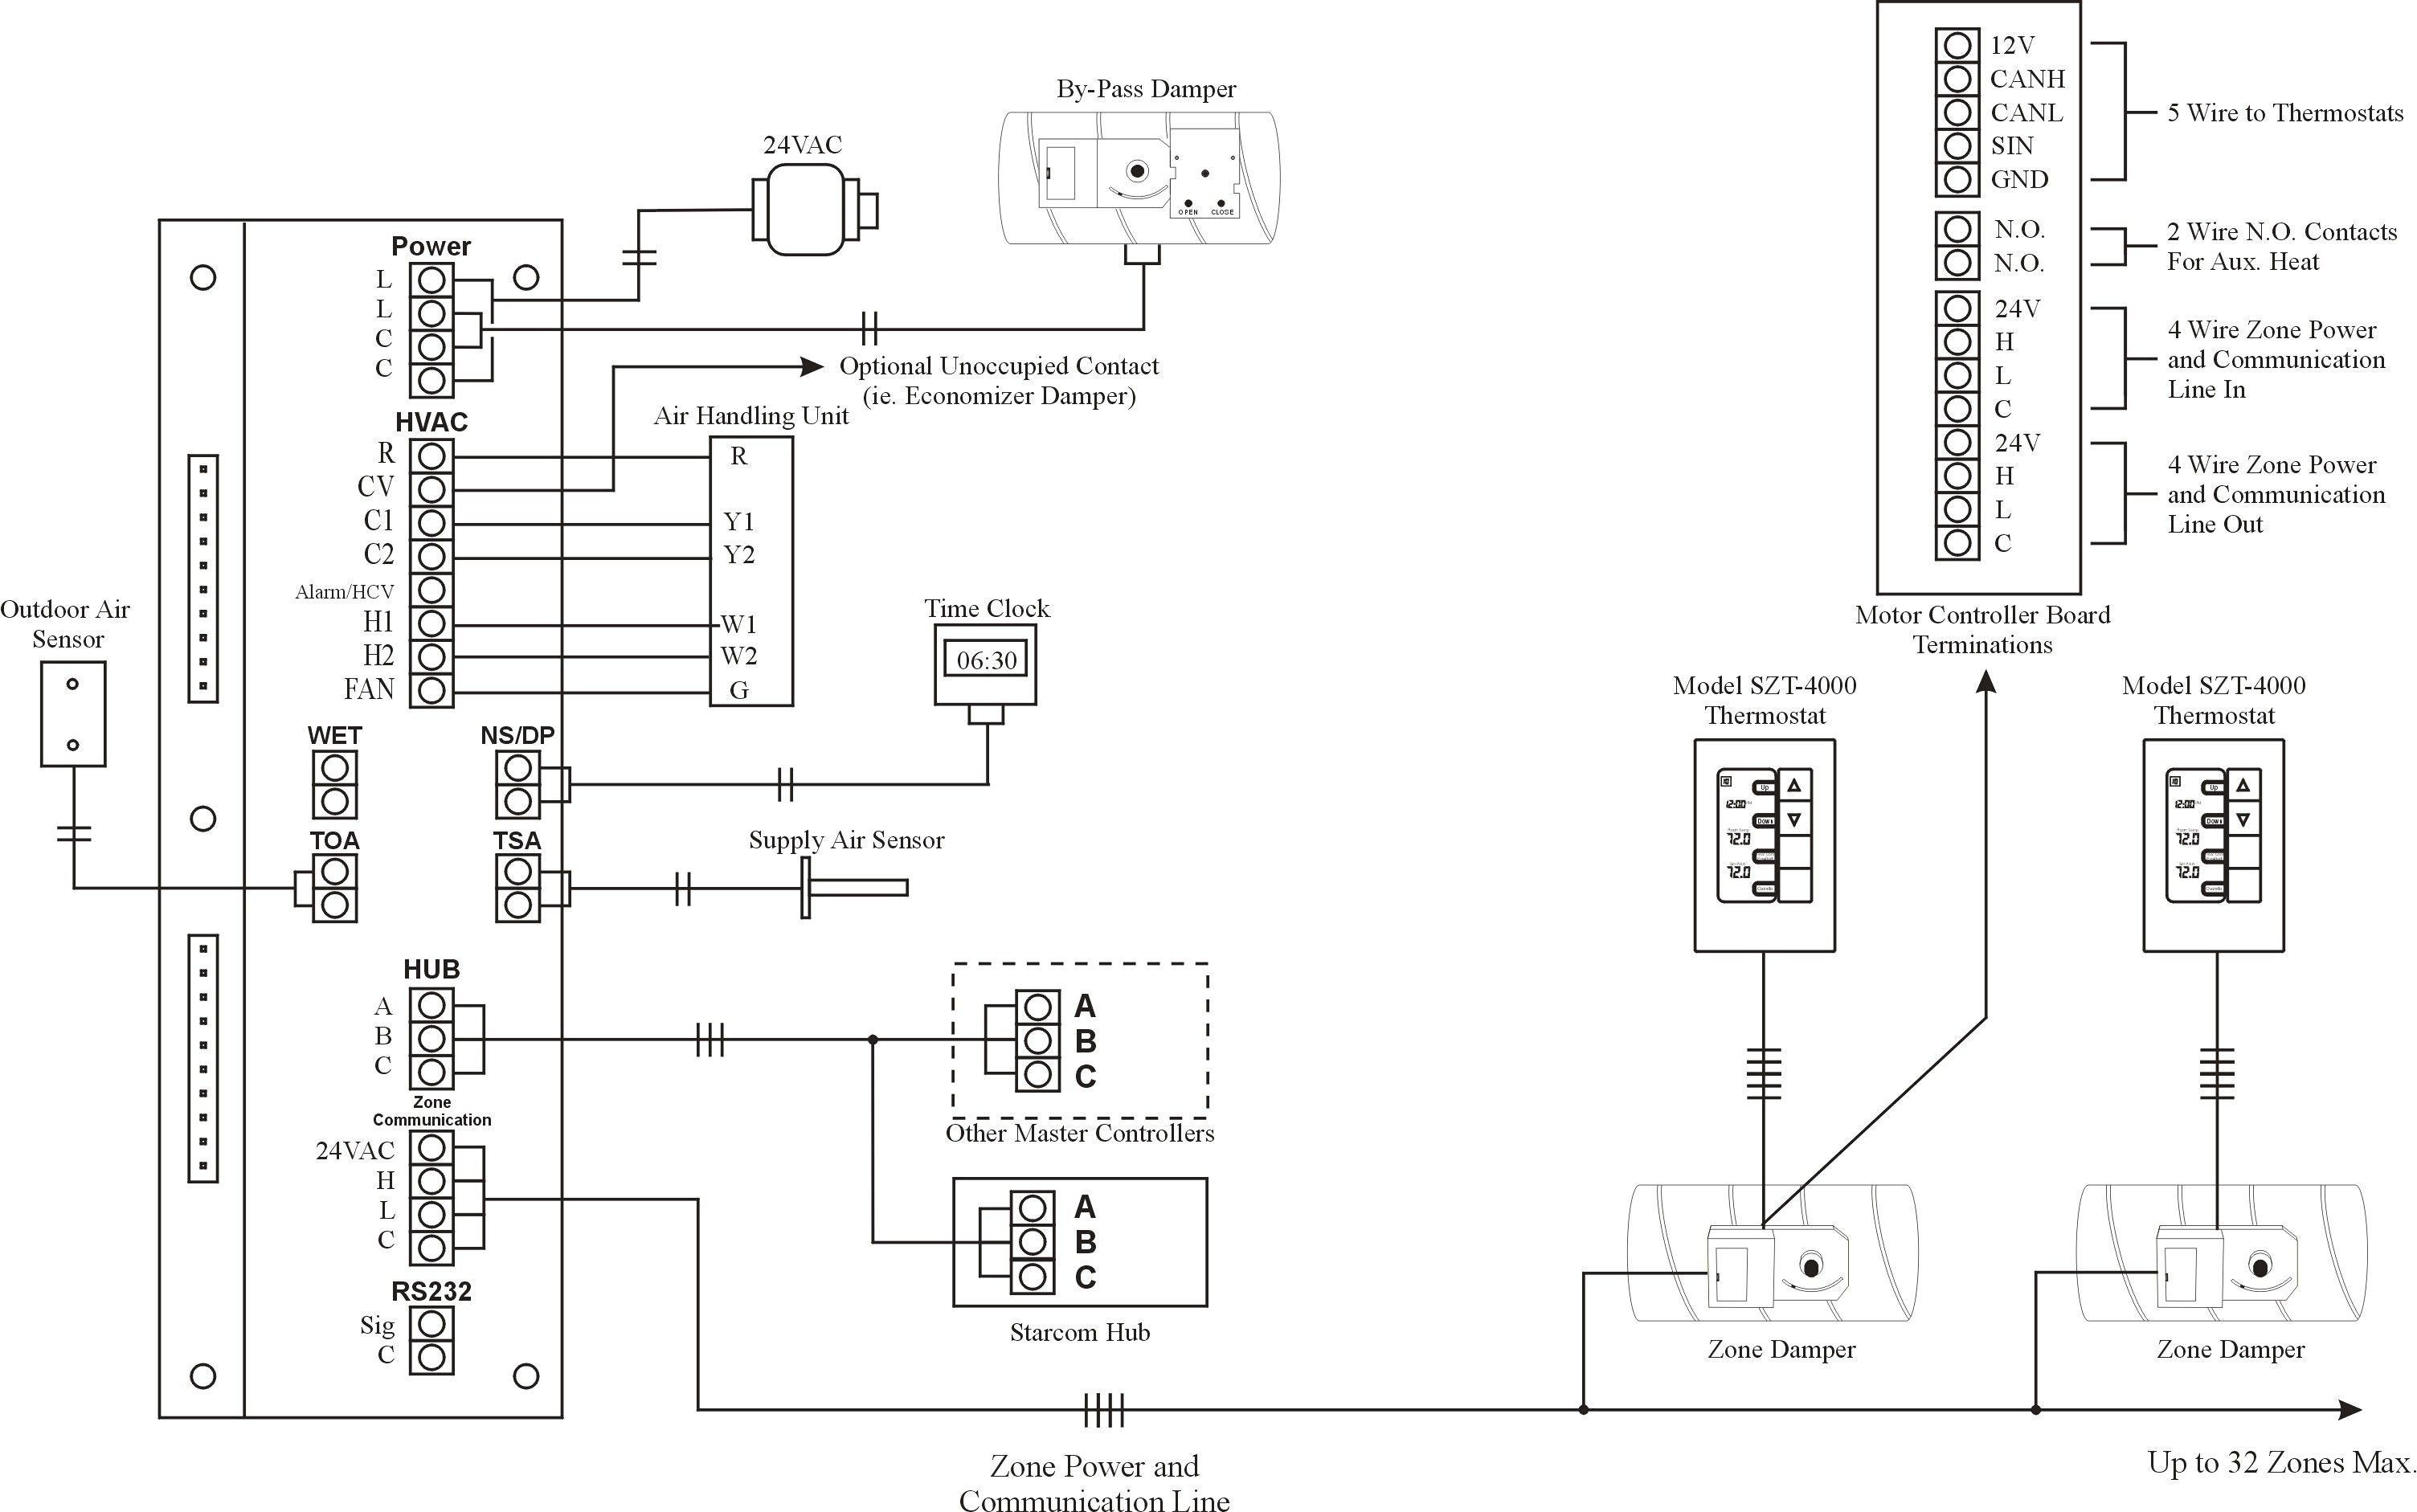 Class A Fire Alarm Wiring Diagram For Your Needs